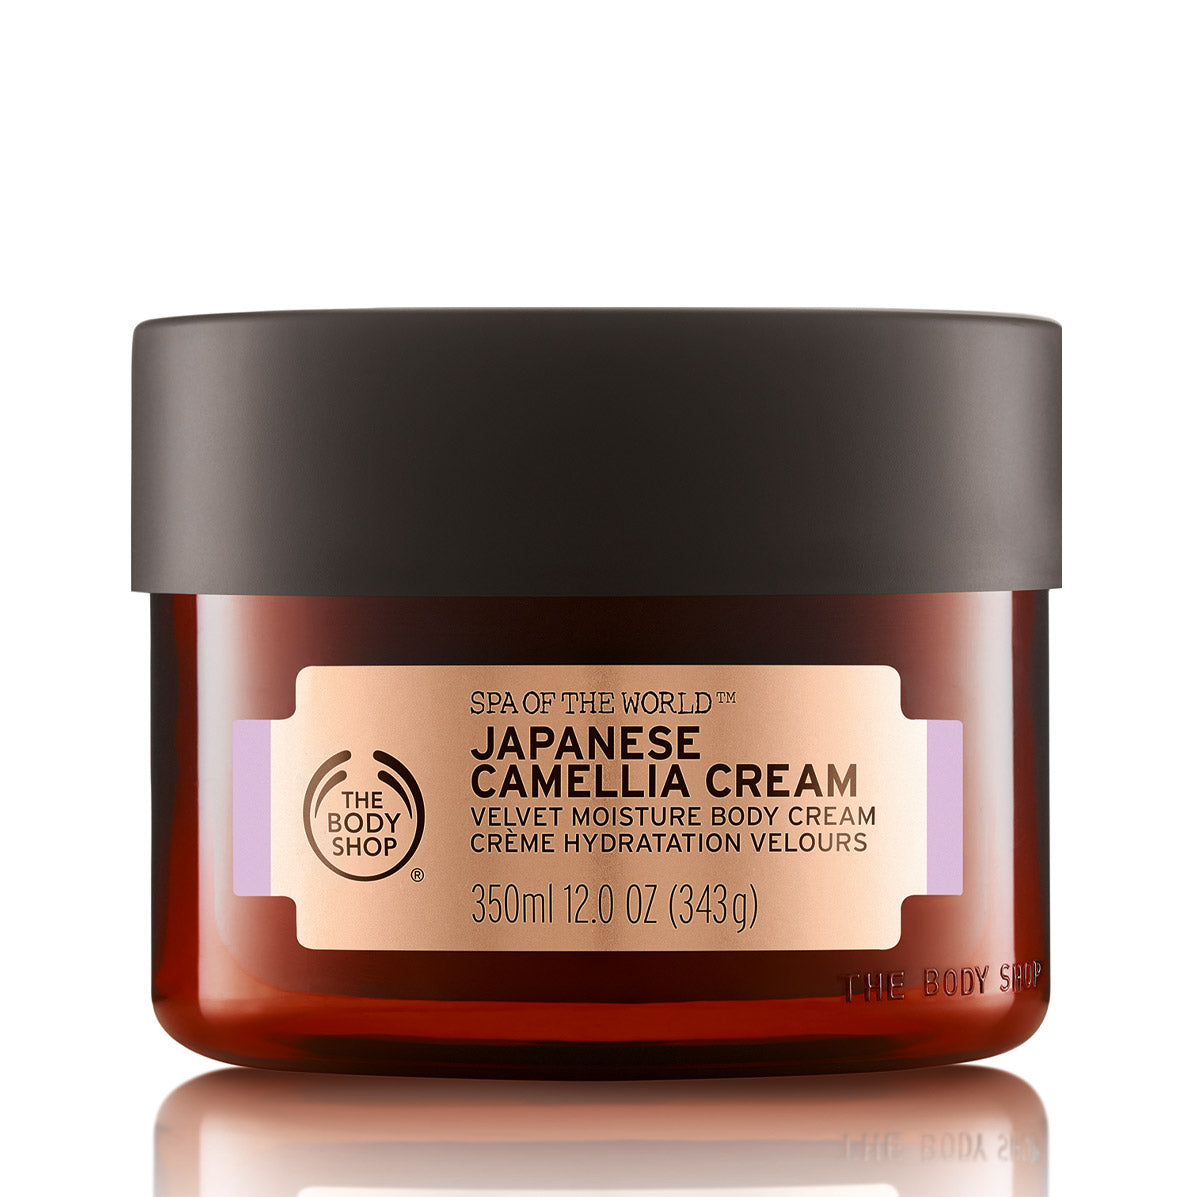 Spa of the World Japanese Camellia Cream